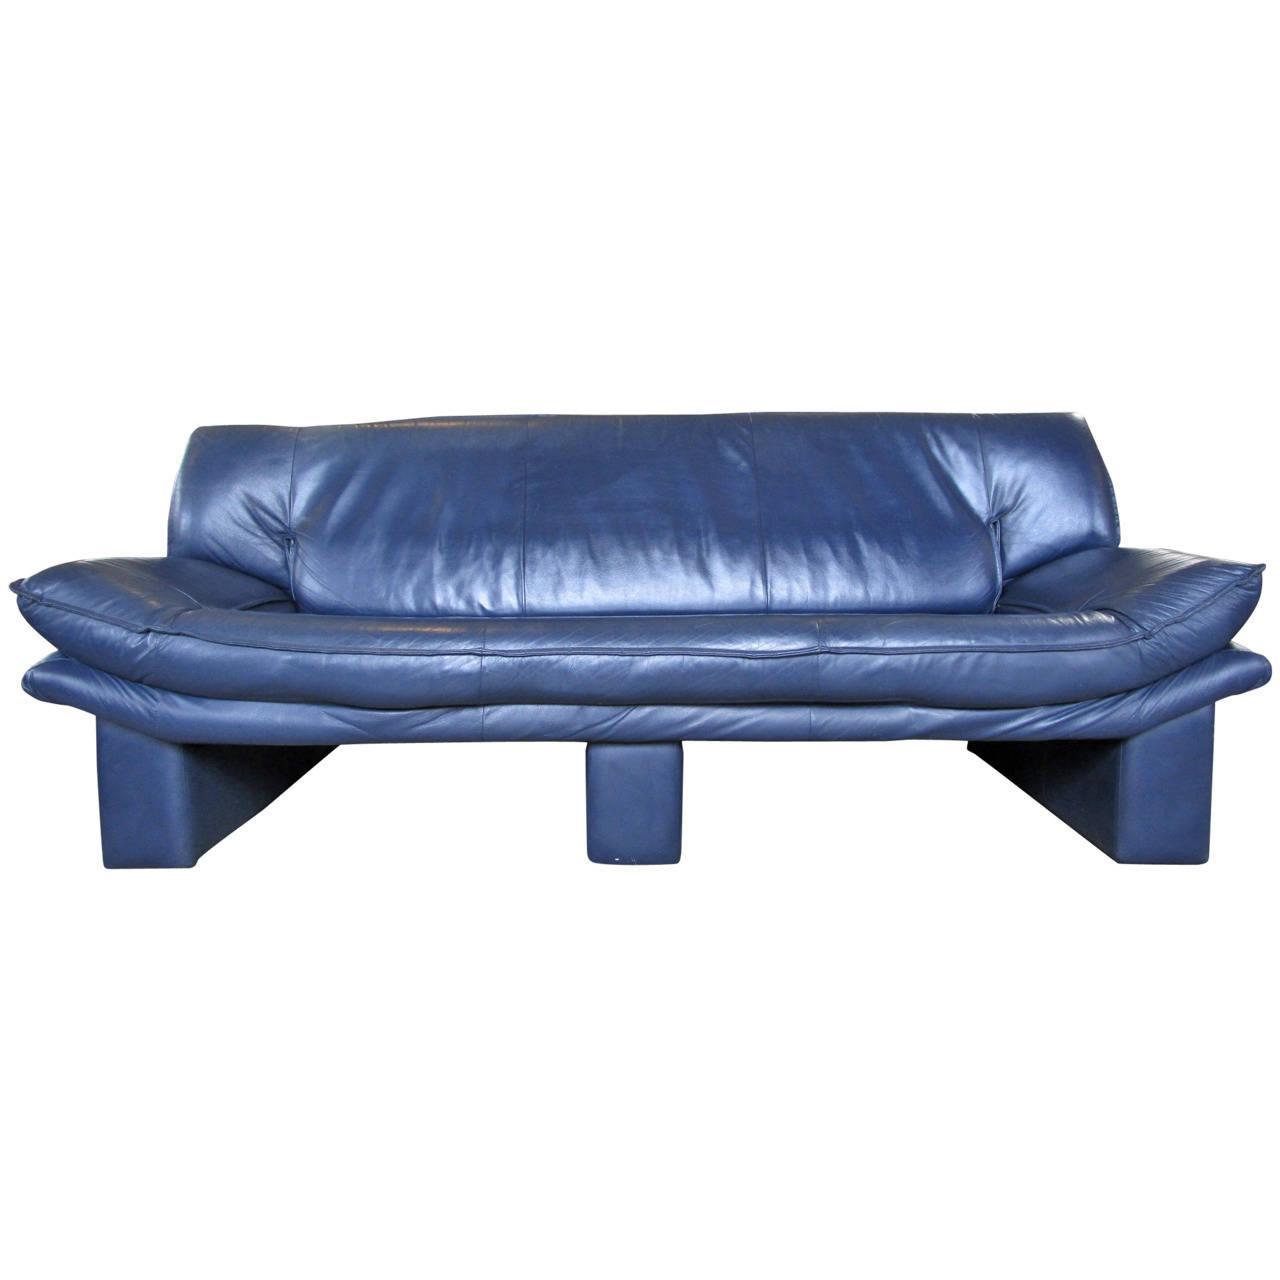 navy blue leather sofa by nicoletti salotti chairish. Black Bedroom Furniture Sets. Home Design Ideas